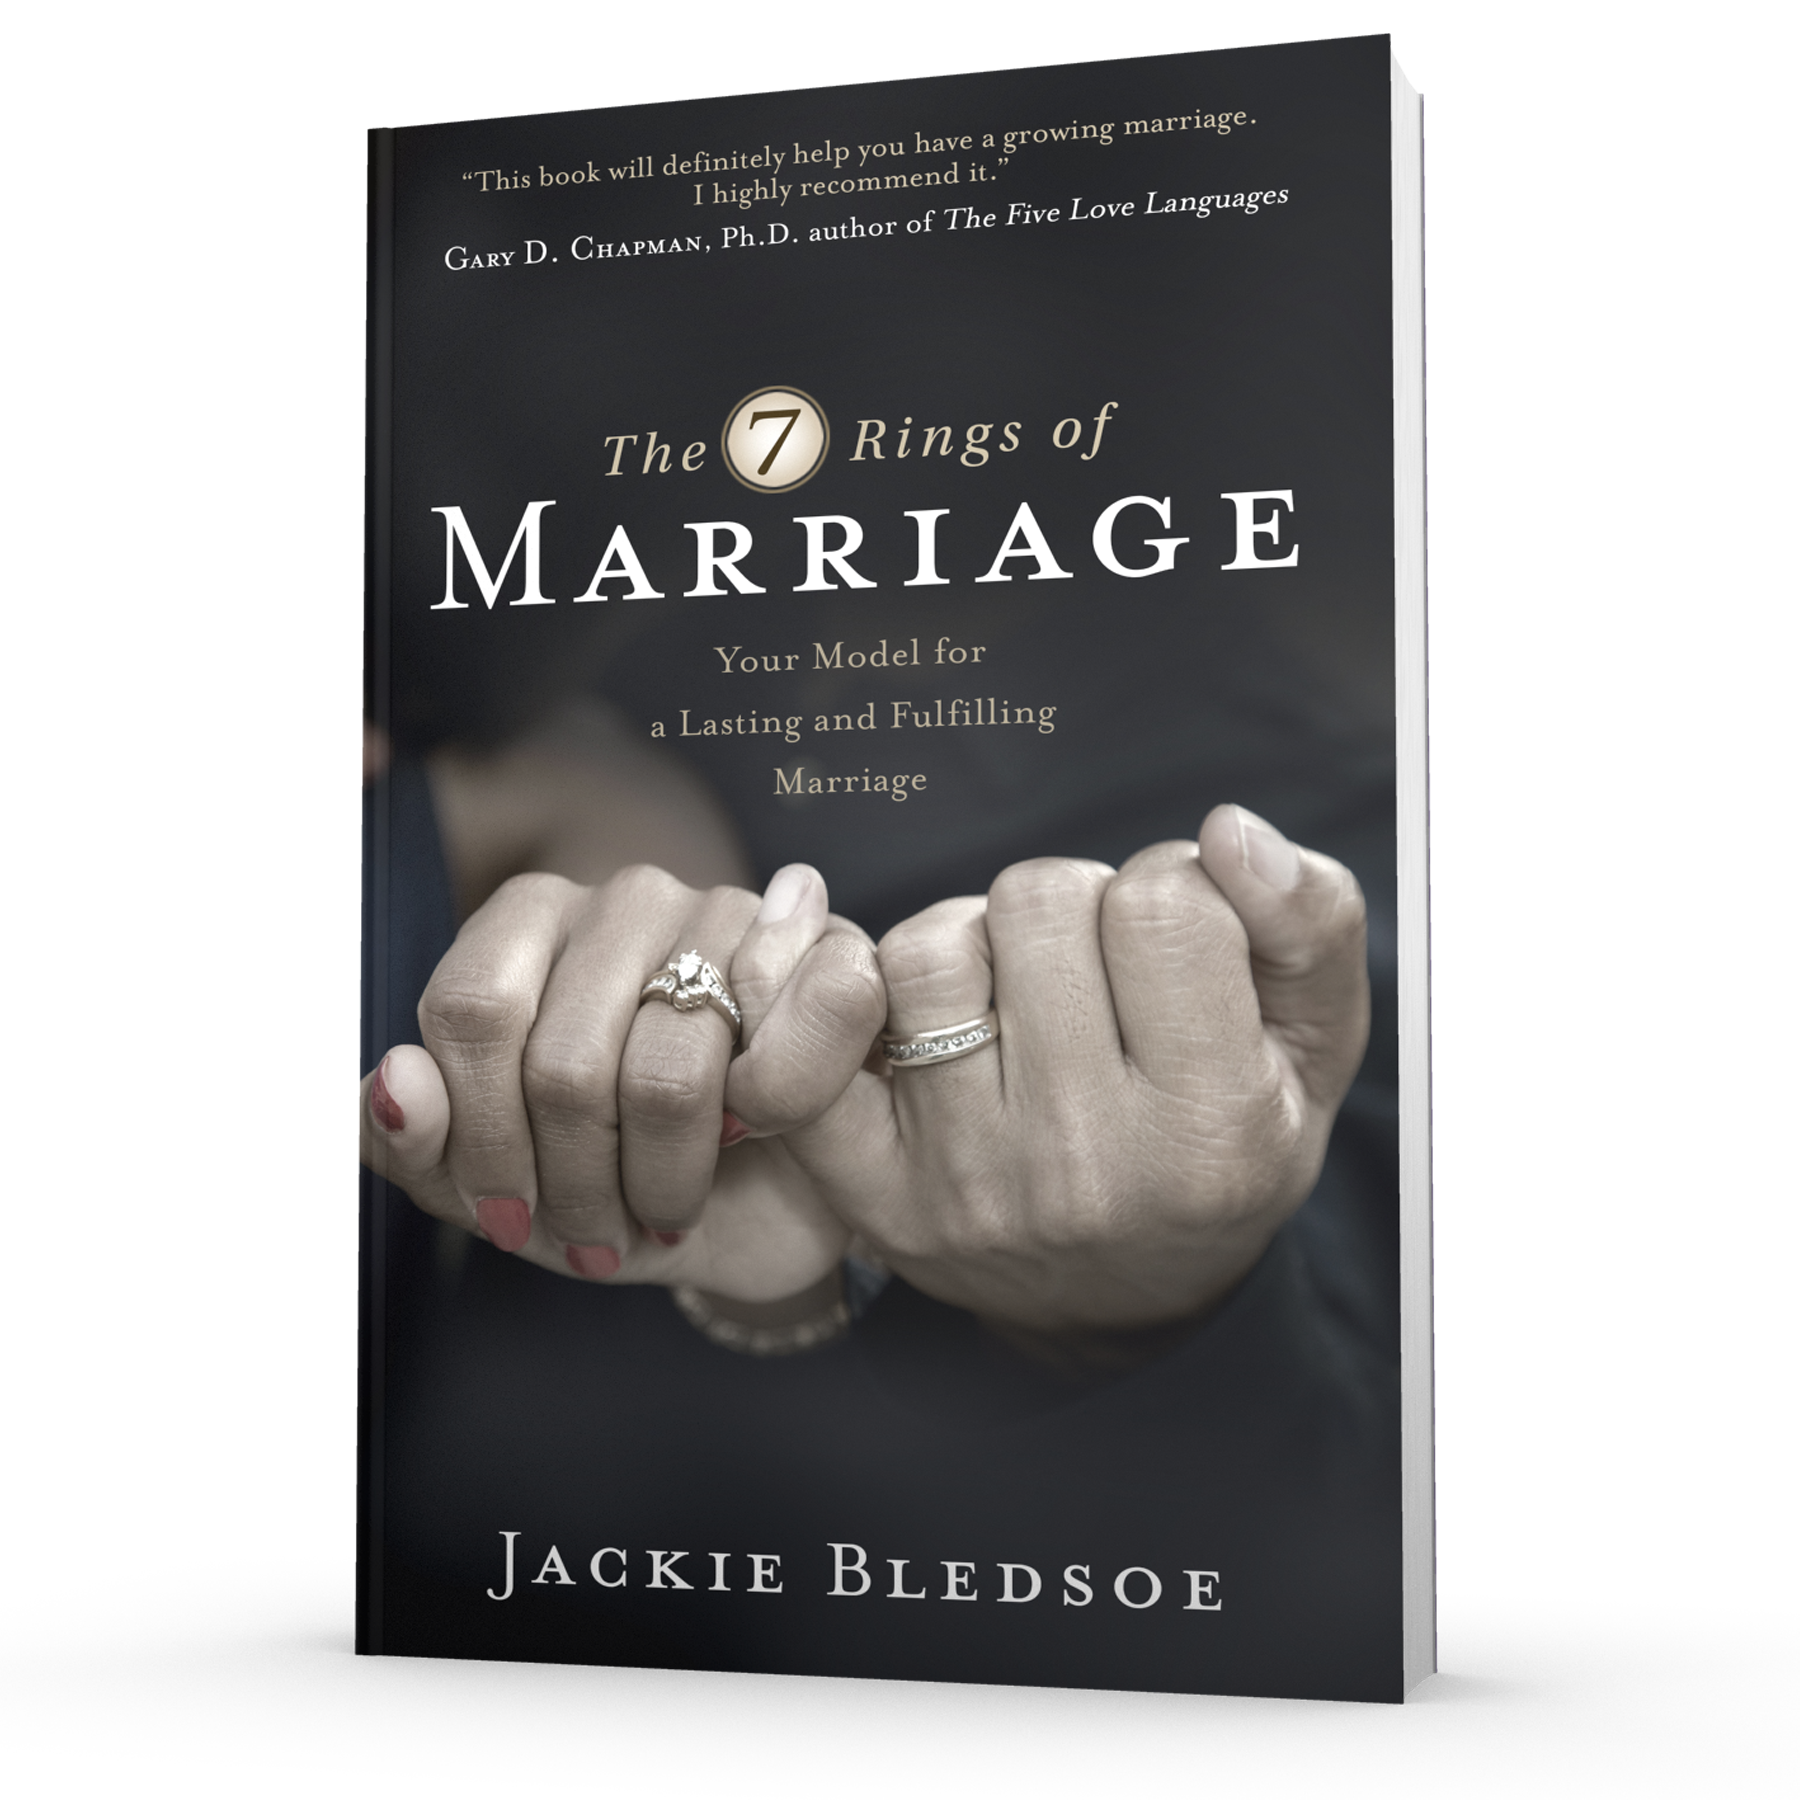 The 7 Rings of Marriage | Your Model for a Lasting and Fulfilling Marriage